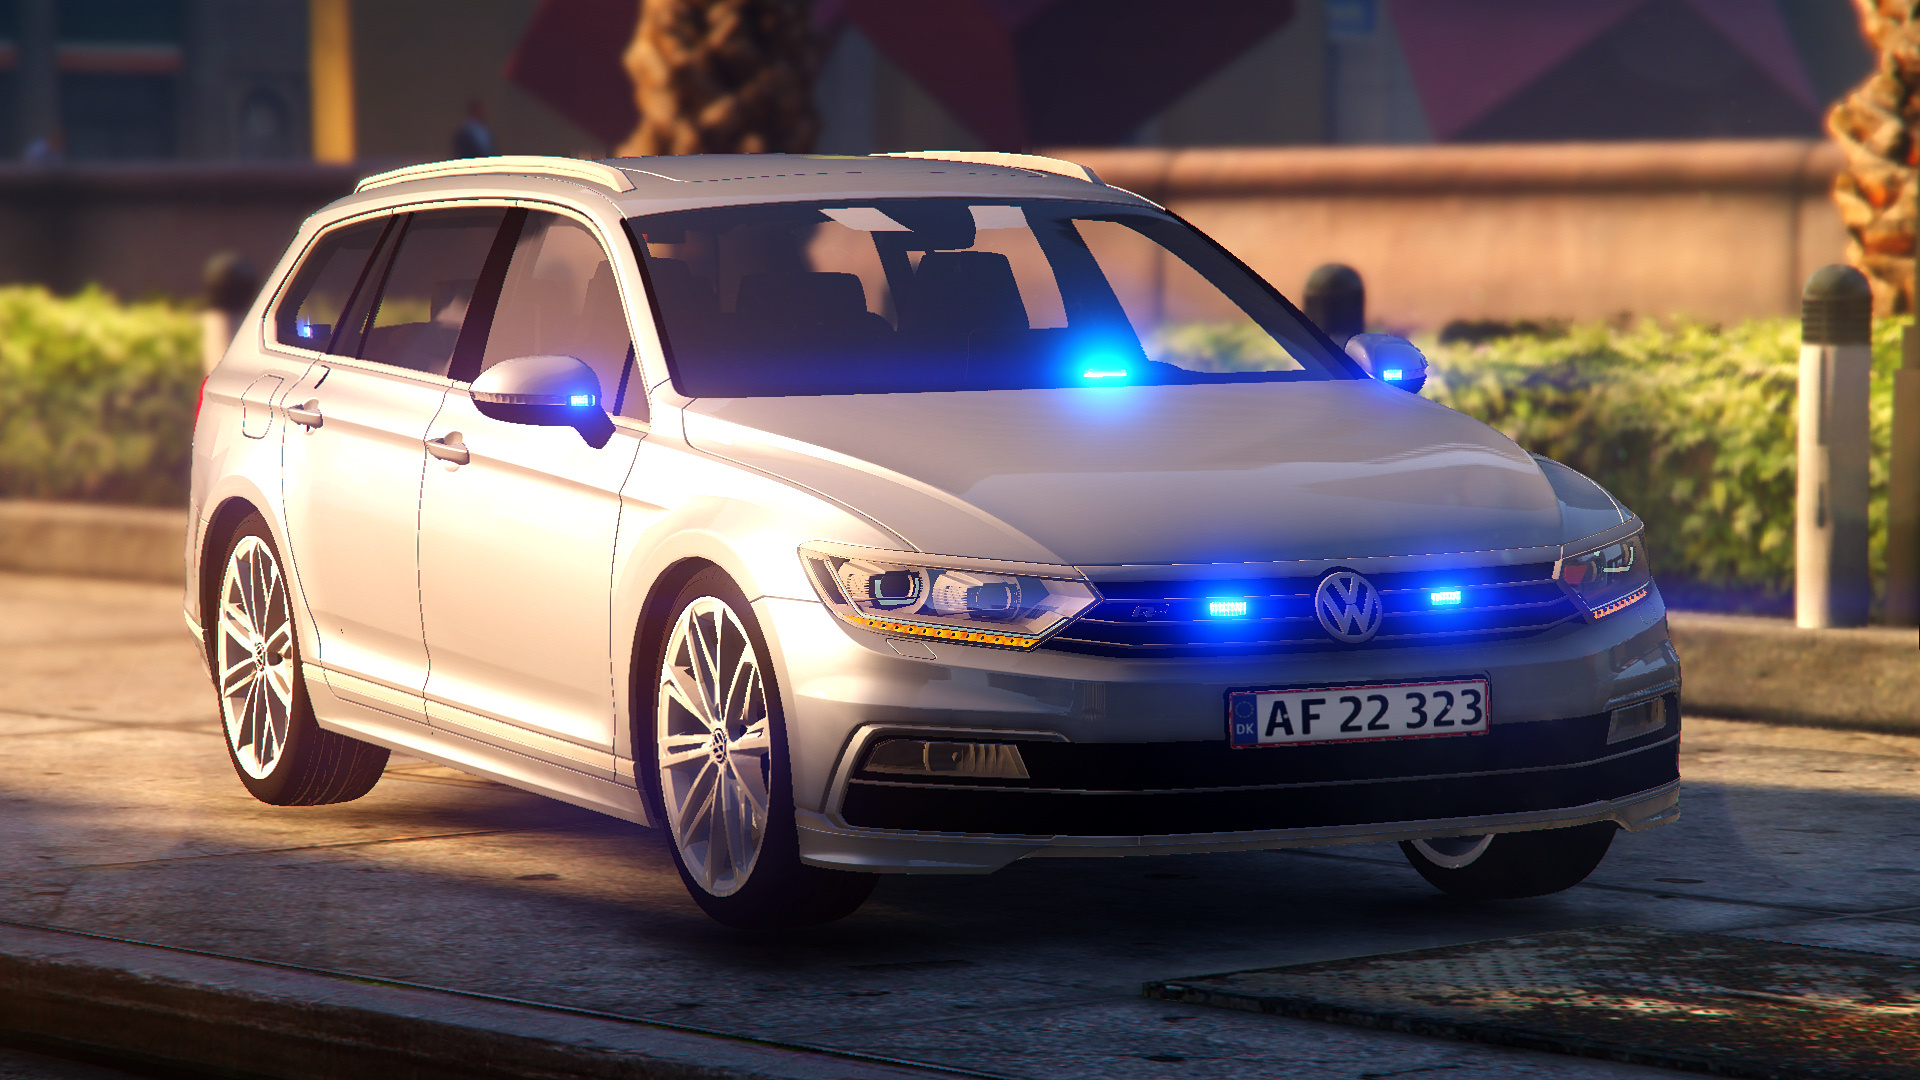 danish 2015 volkswagen passat r line unmarked version gta5. Black Bedroom Furniture Sets. Home Design Ideas